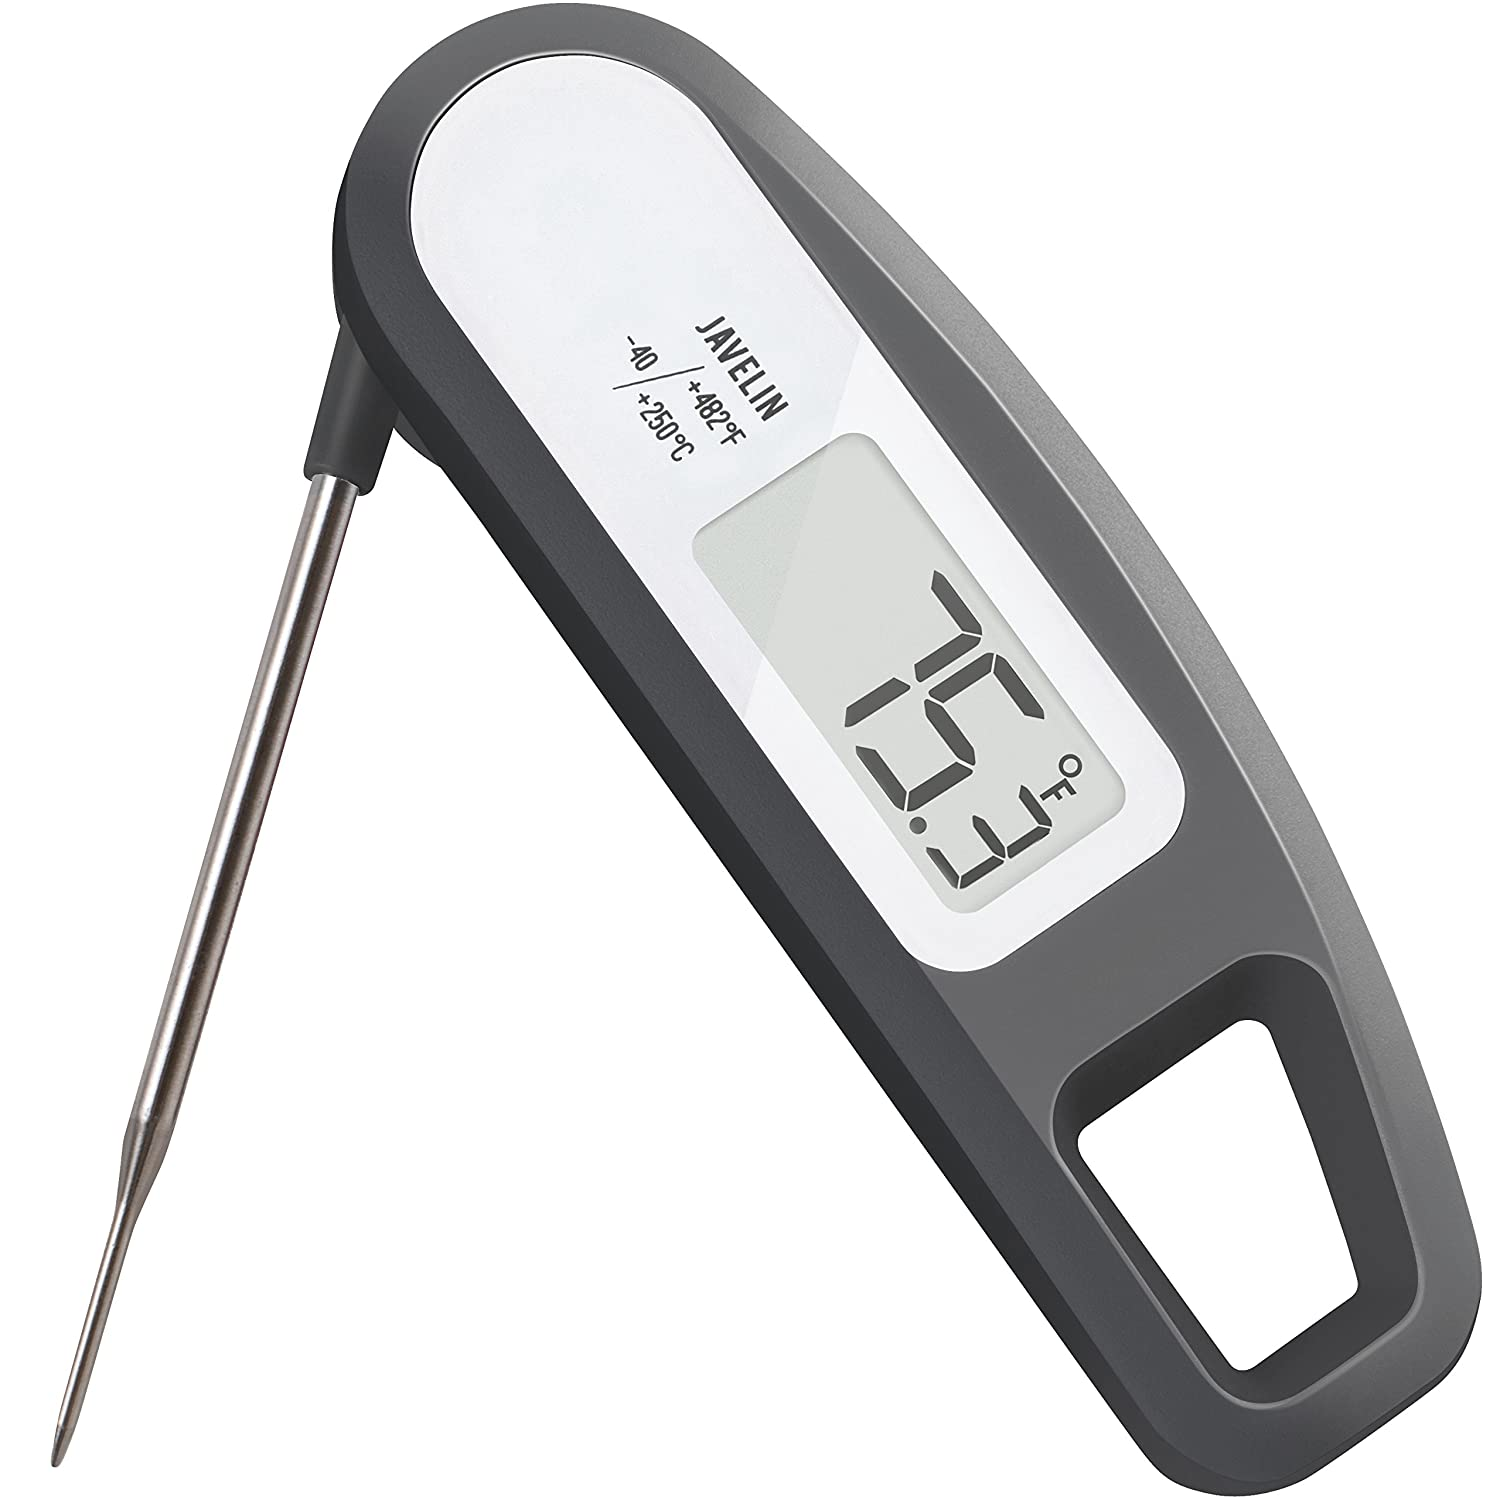 Ultra Fast & Accurate, High-Performing Digital Food/Meat Thermometer - Lavatools Javelin/Thermowand (Sesame)